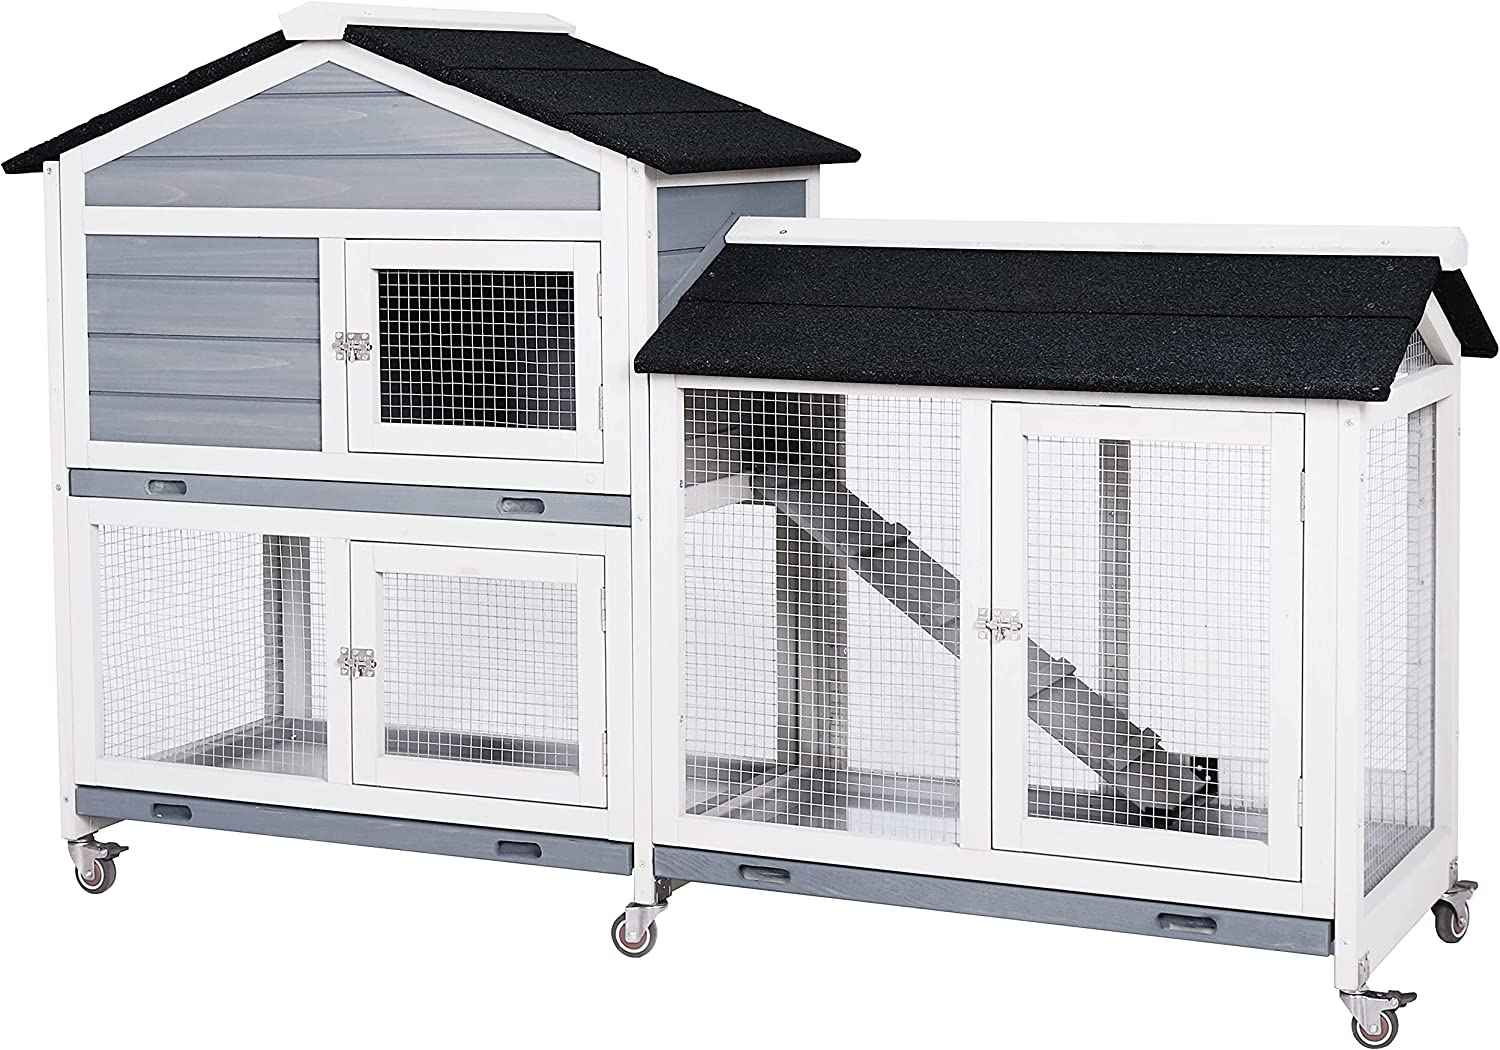 MUPATER Wooden Rabbit Hutch Bunny Cage for Indoor and Outdoor with Casters,  Large Guinea Pig House Hamster Hedgehog Cage with Ramp, Run and Removable  ...